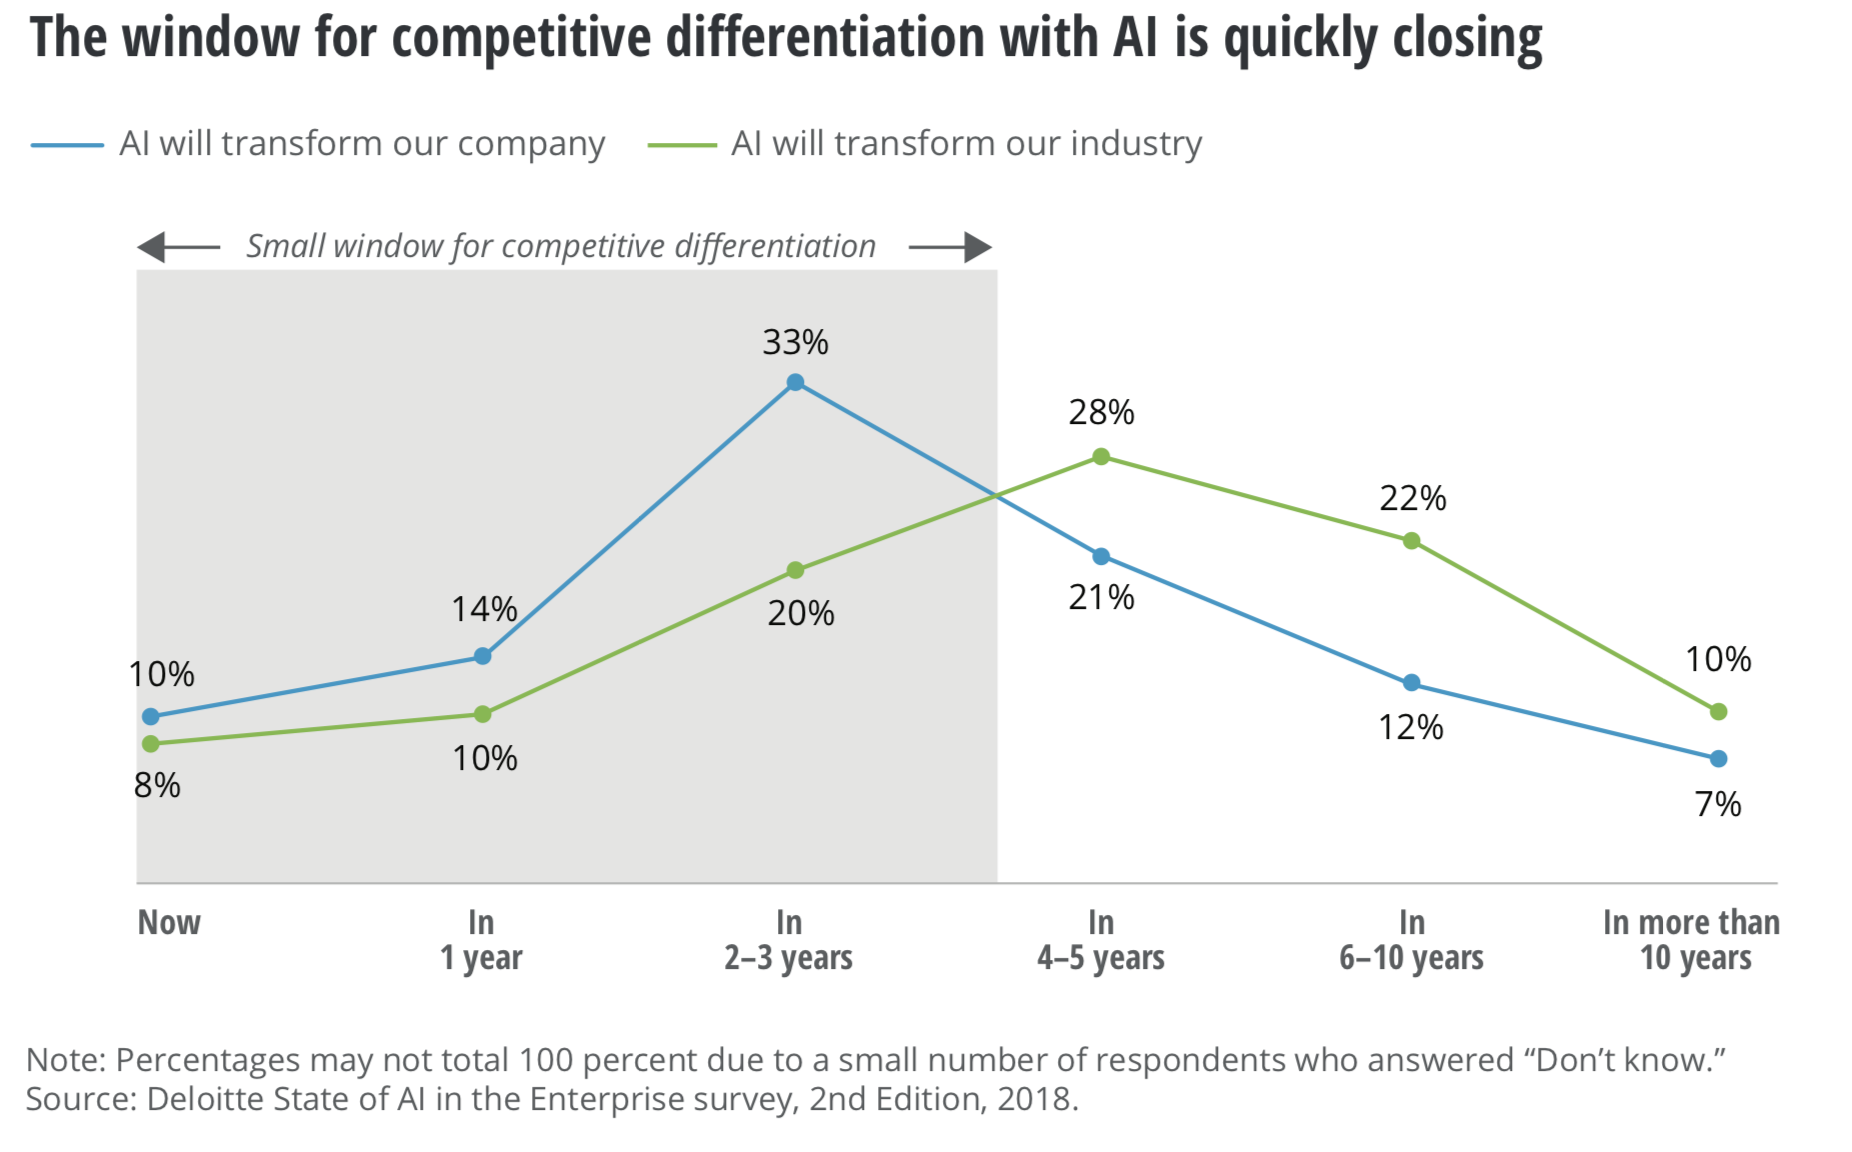 Window for competitive differentiation with AI is quicly closing